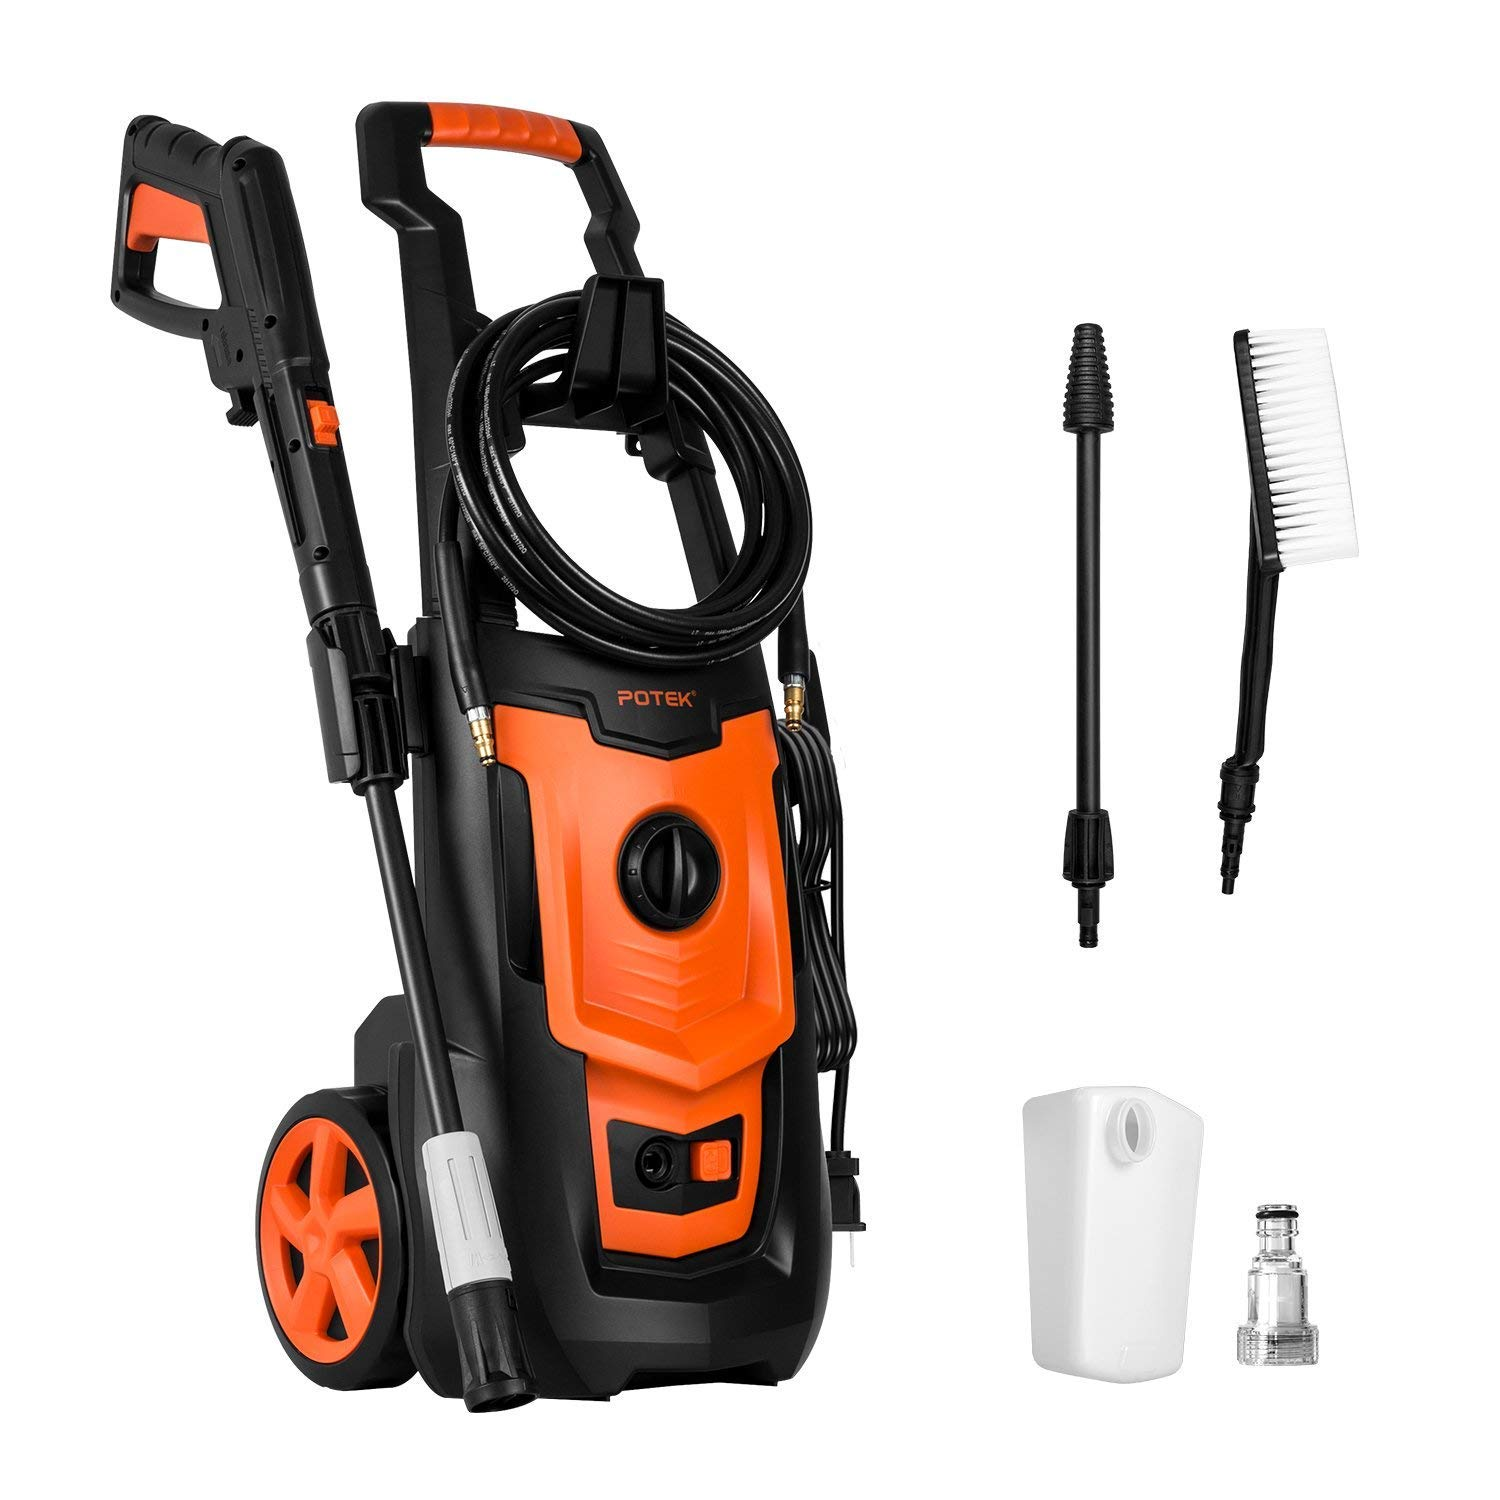 POTEK 1800PSI 1.4 GPM 13-AMP Electric Pressure Washer,Power Washer with Adjustable Spray Nozzle Gun,Spray Brush and Detergent Nozzle